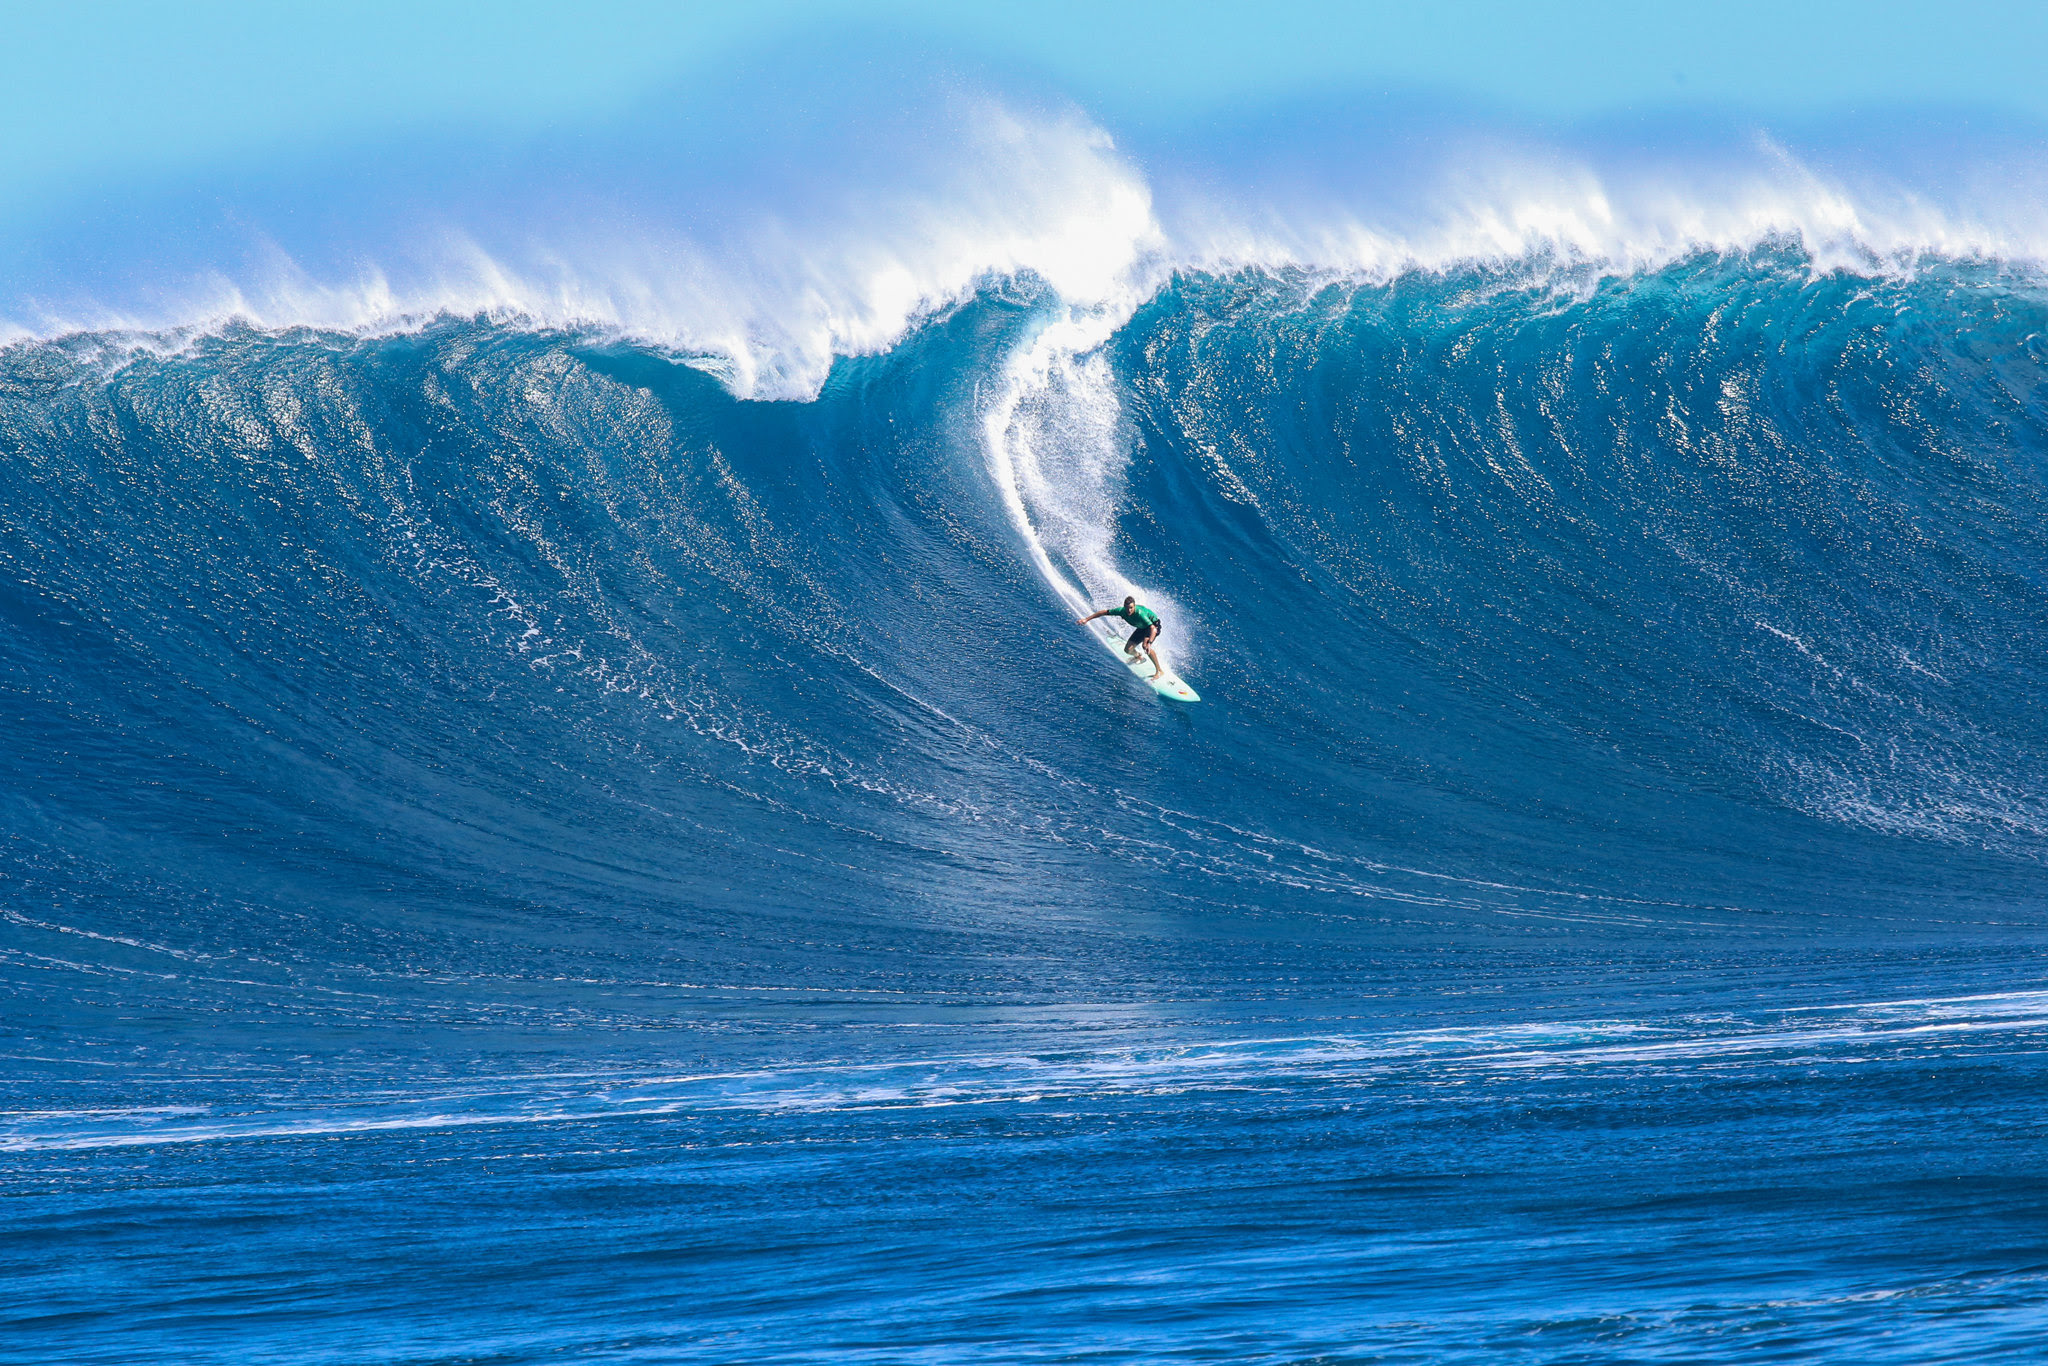 Maui's Big Wave Surfers Among WSL Award Finalists